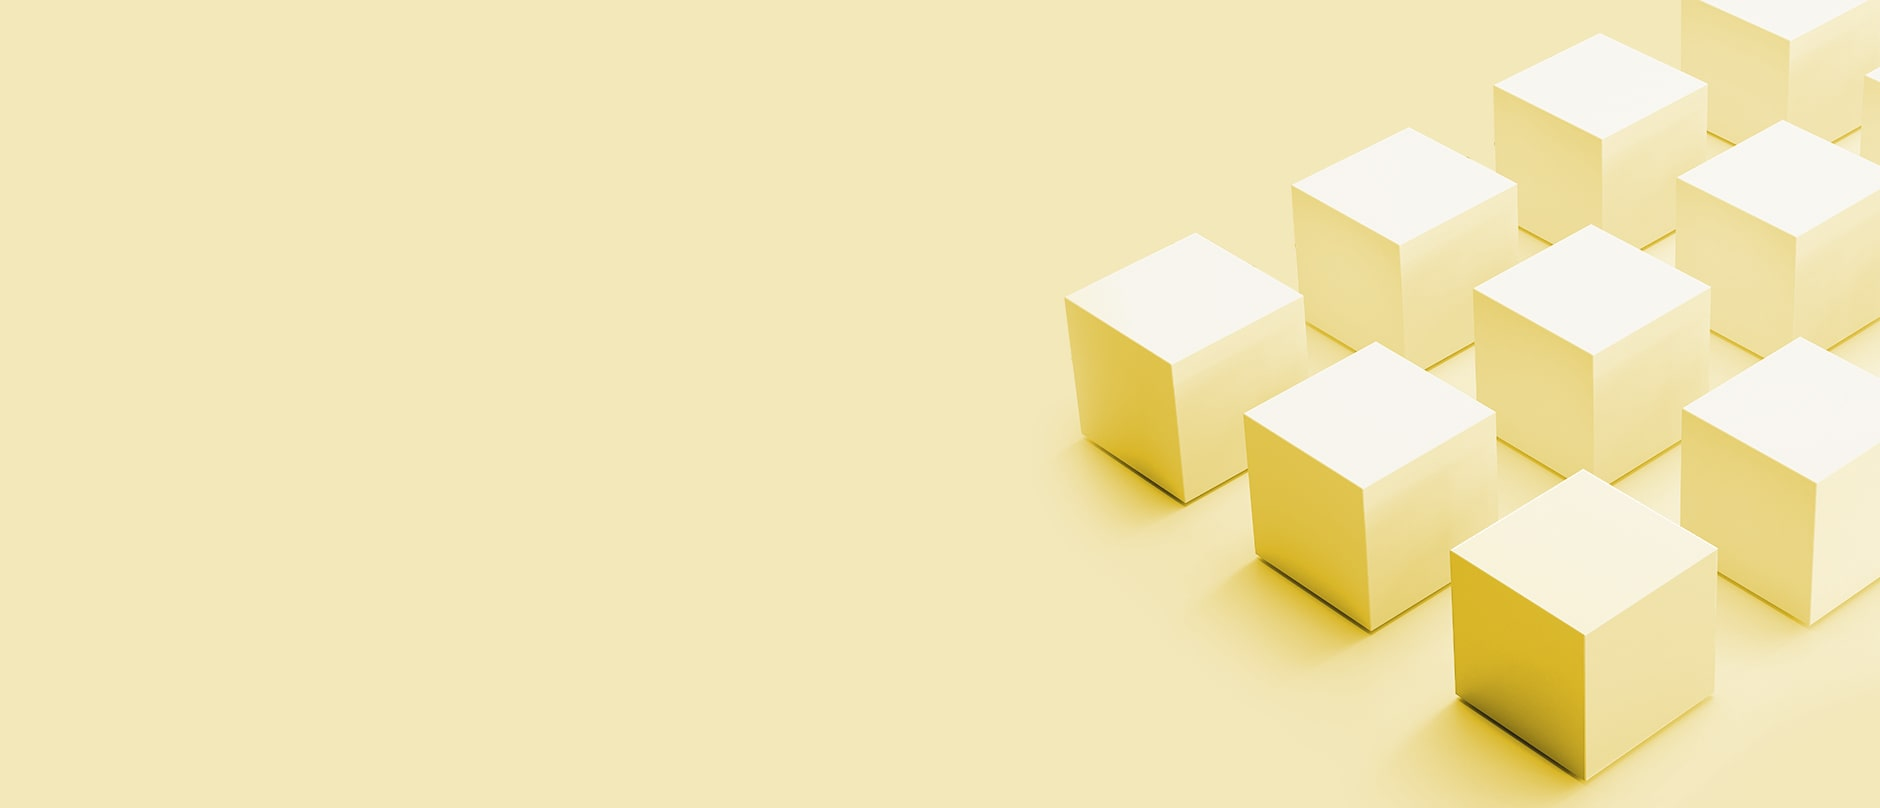 9 yellow cubes on a yellow background